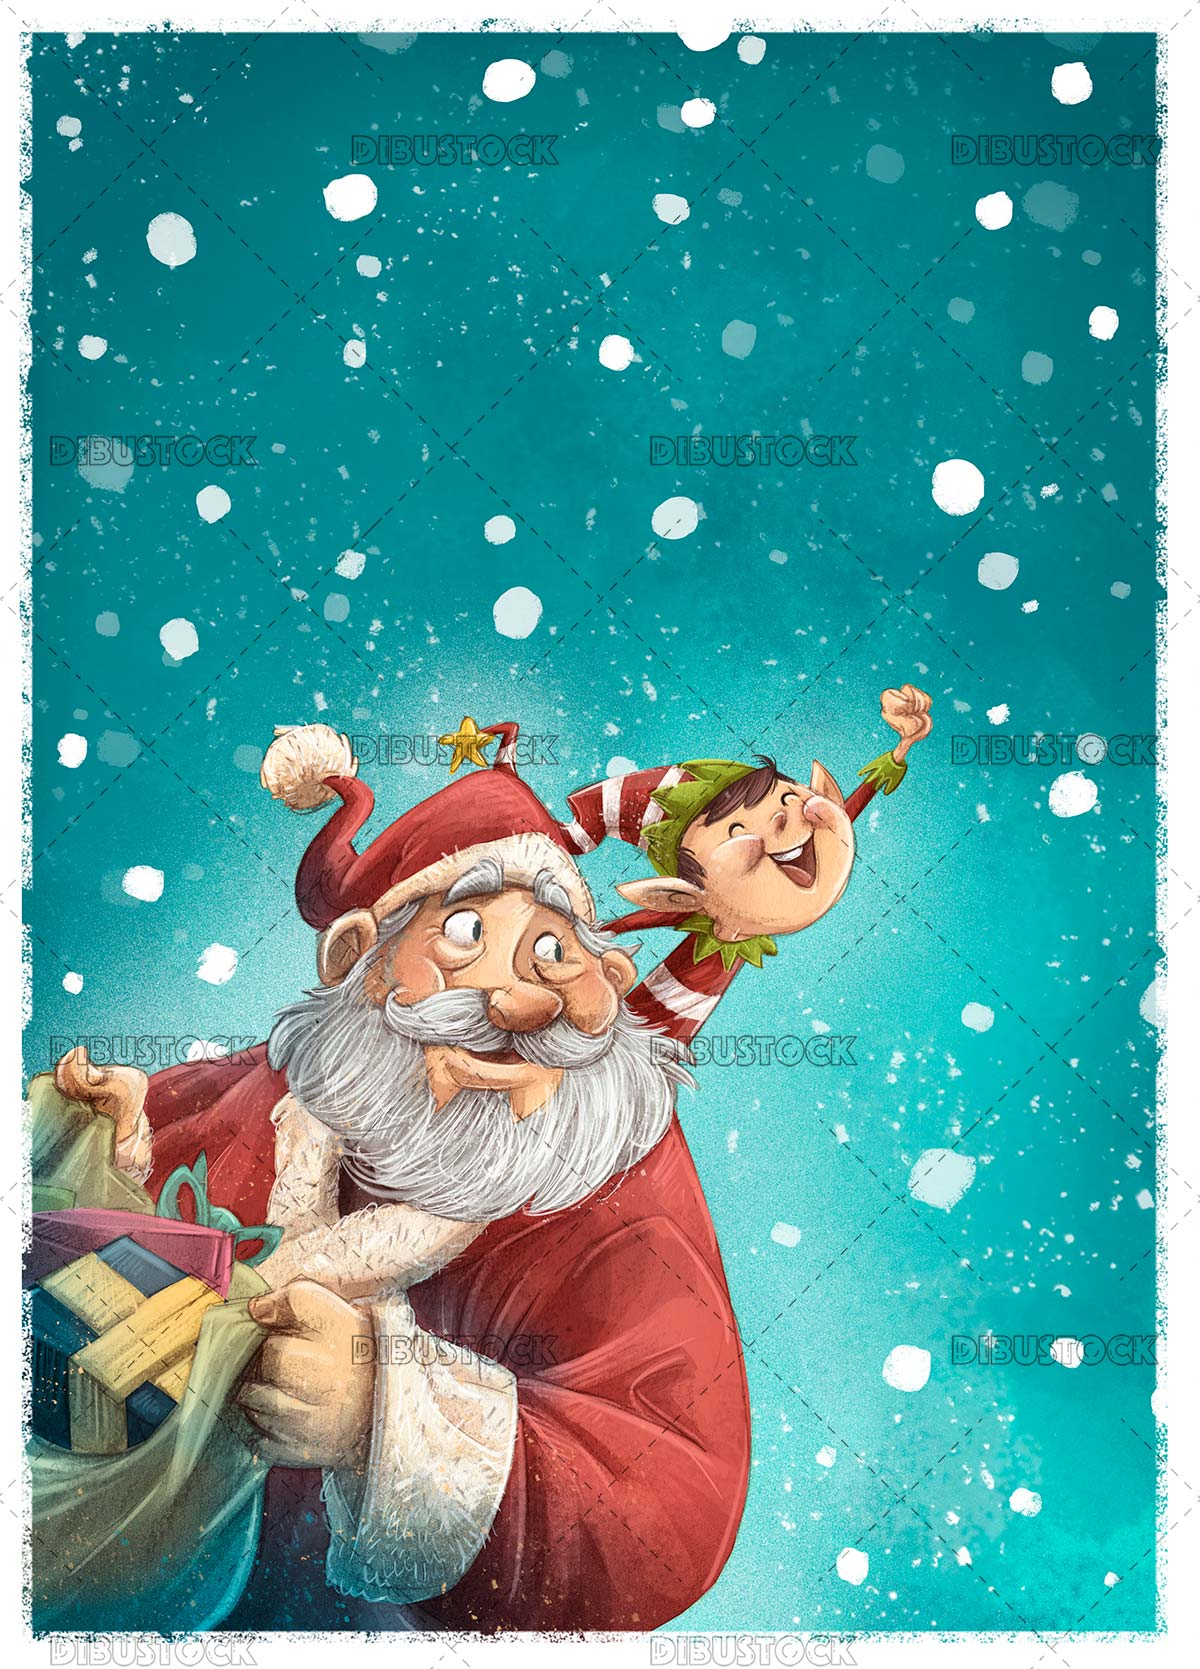 Santa Claus and elf with snowing background